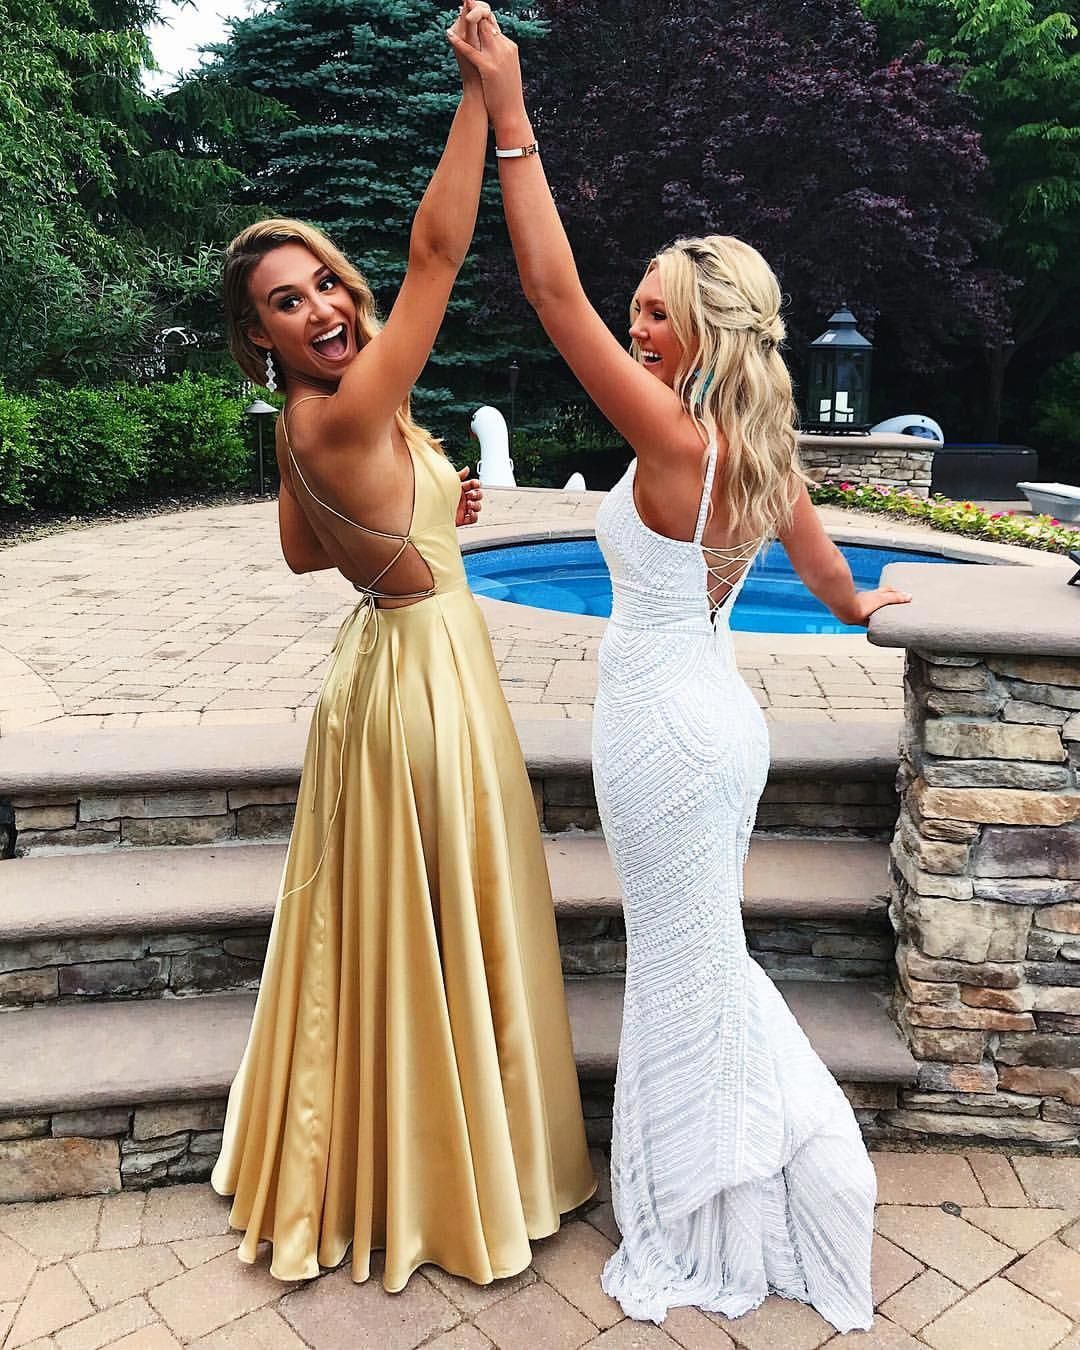 You Won T Stay Friends If You Go To Different High Schools Learntodance Prom Photoshoot Cute Prom Dresses Prom Poses [ 1350 x 1080 Pixel ]